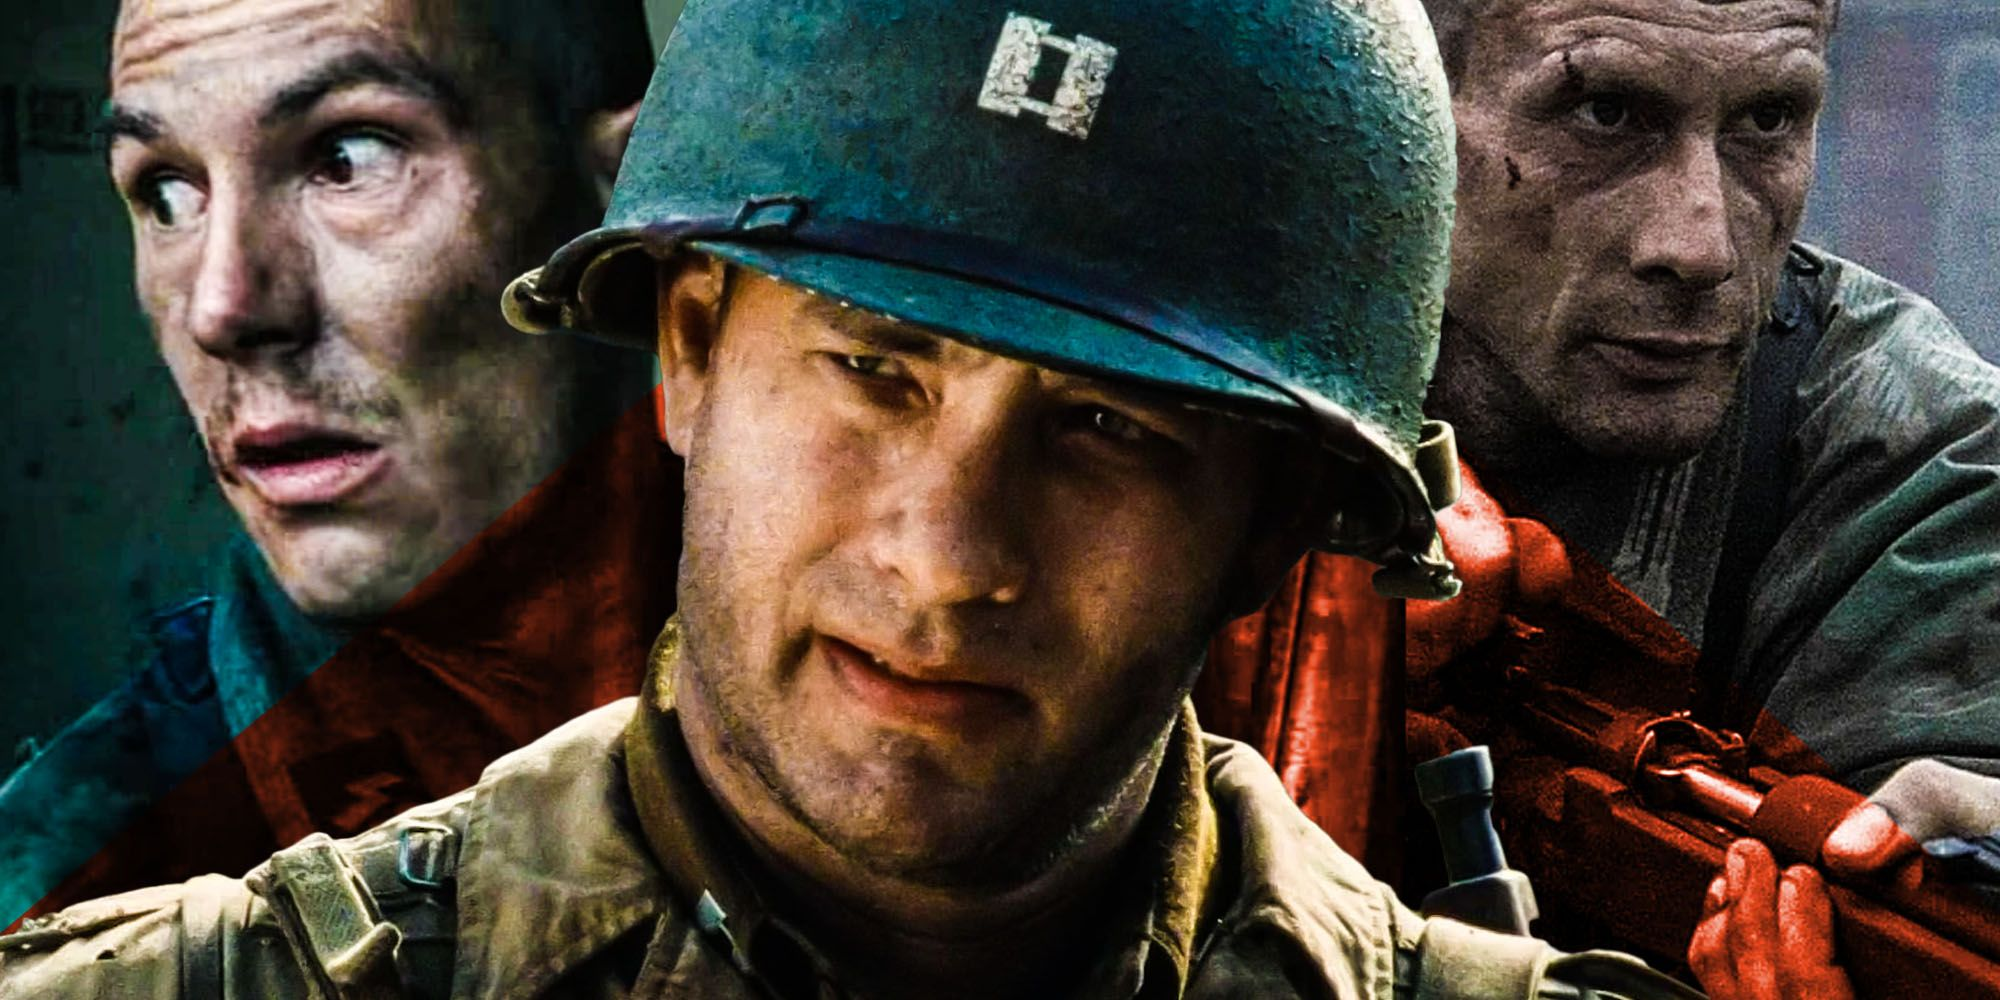 Saving Private Ryan: Are The Two Germans Actually The Same Character?